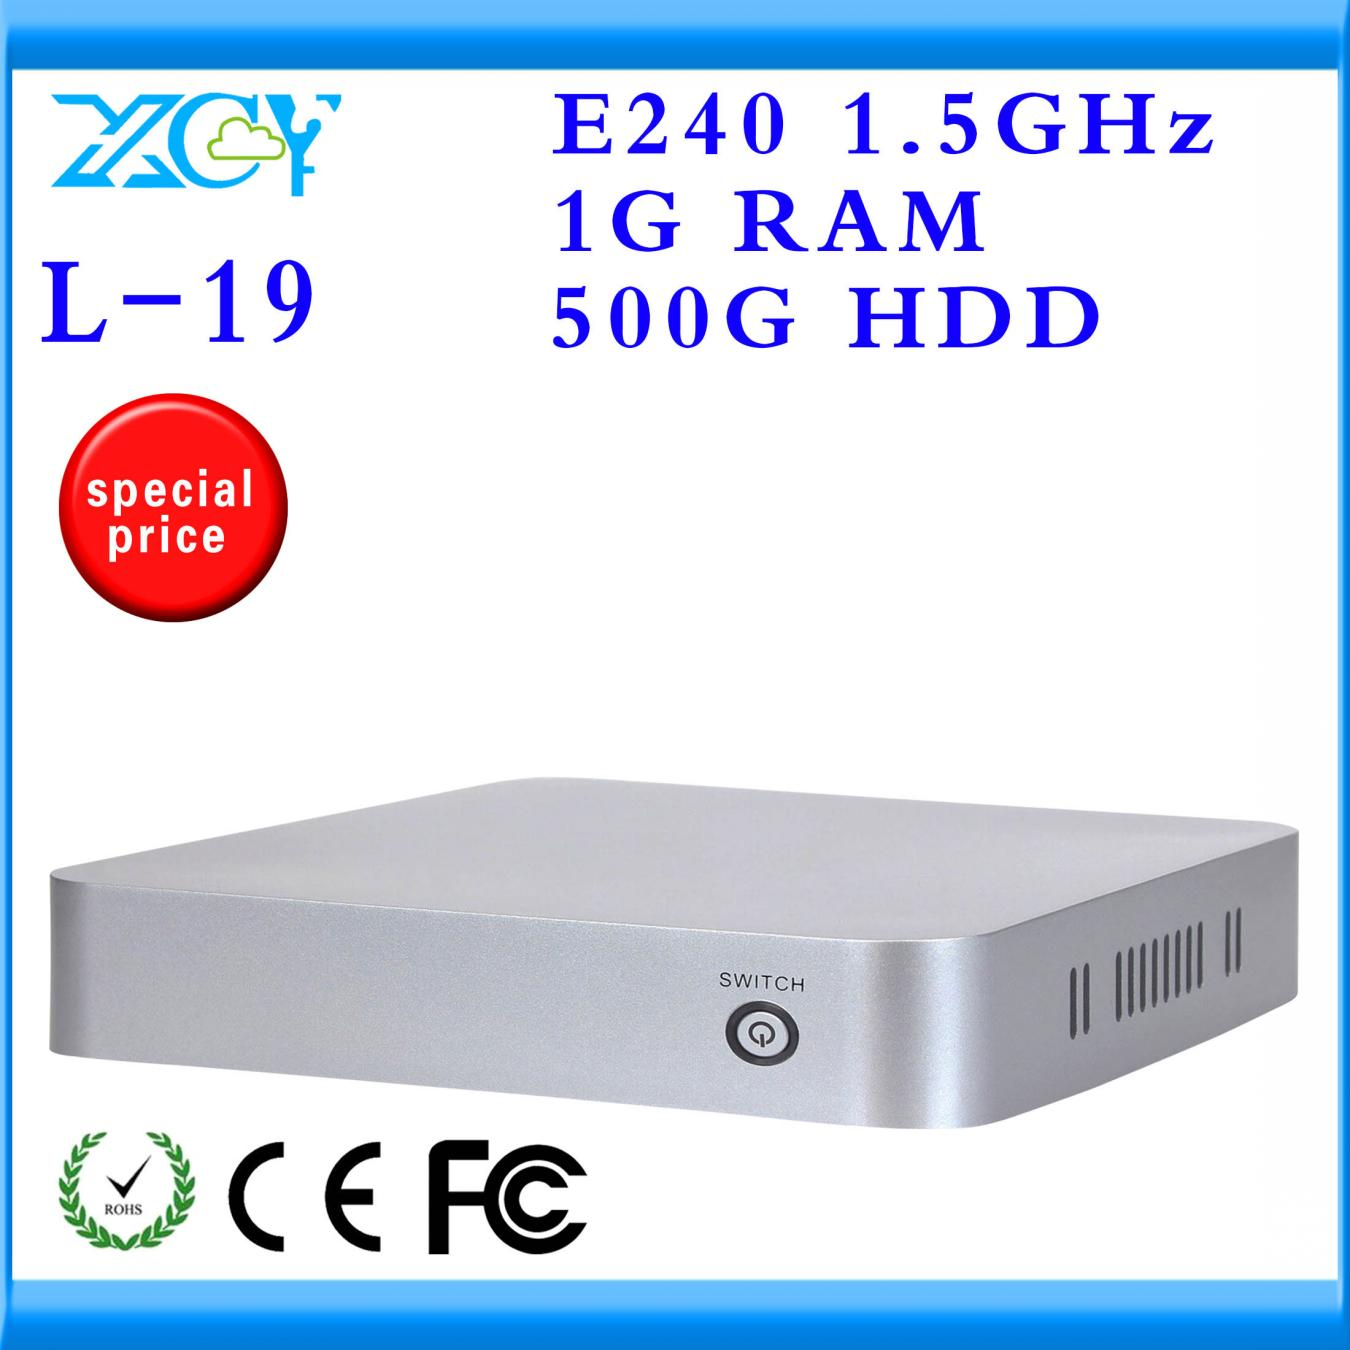 XCY Brand HD Video Terminal thin client embedded pc AMD E240 single core 1.5GHZ 500G Support WIN7 Linux Windows XP Ubuntu PC(China (Mainland))